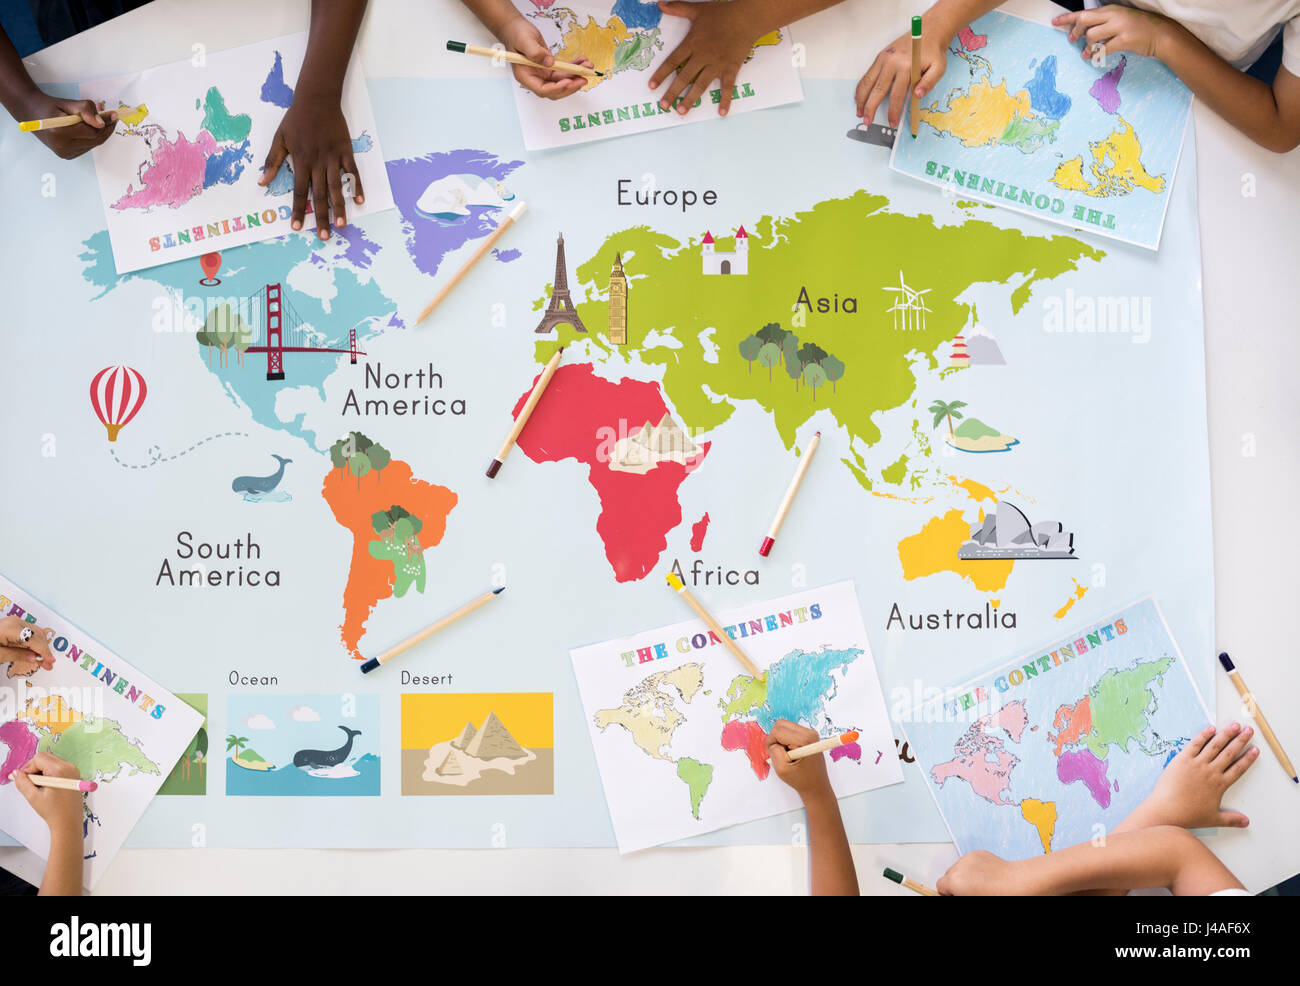 Kids Learning World Map With Continents Countries Ocean